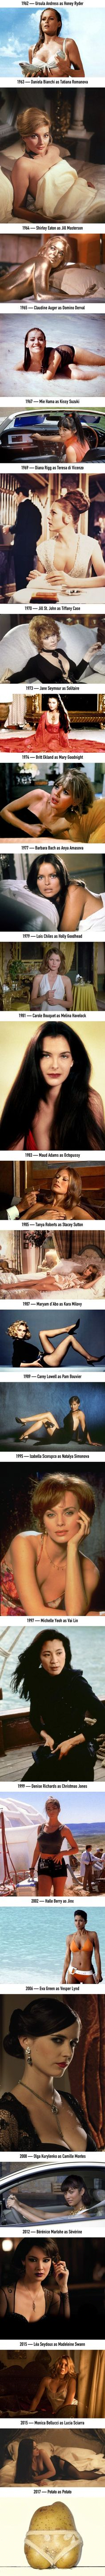 What Bond Girls Looked Like Over the History of 007 Movies-Watch Free Latest Movies Online on James Bond Party, James Bond Movies, Bond Girls, John David, Sean Connery, Latest Movies, Classic Movies, Best Funny Pictures, Bizarre Pictures